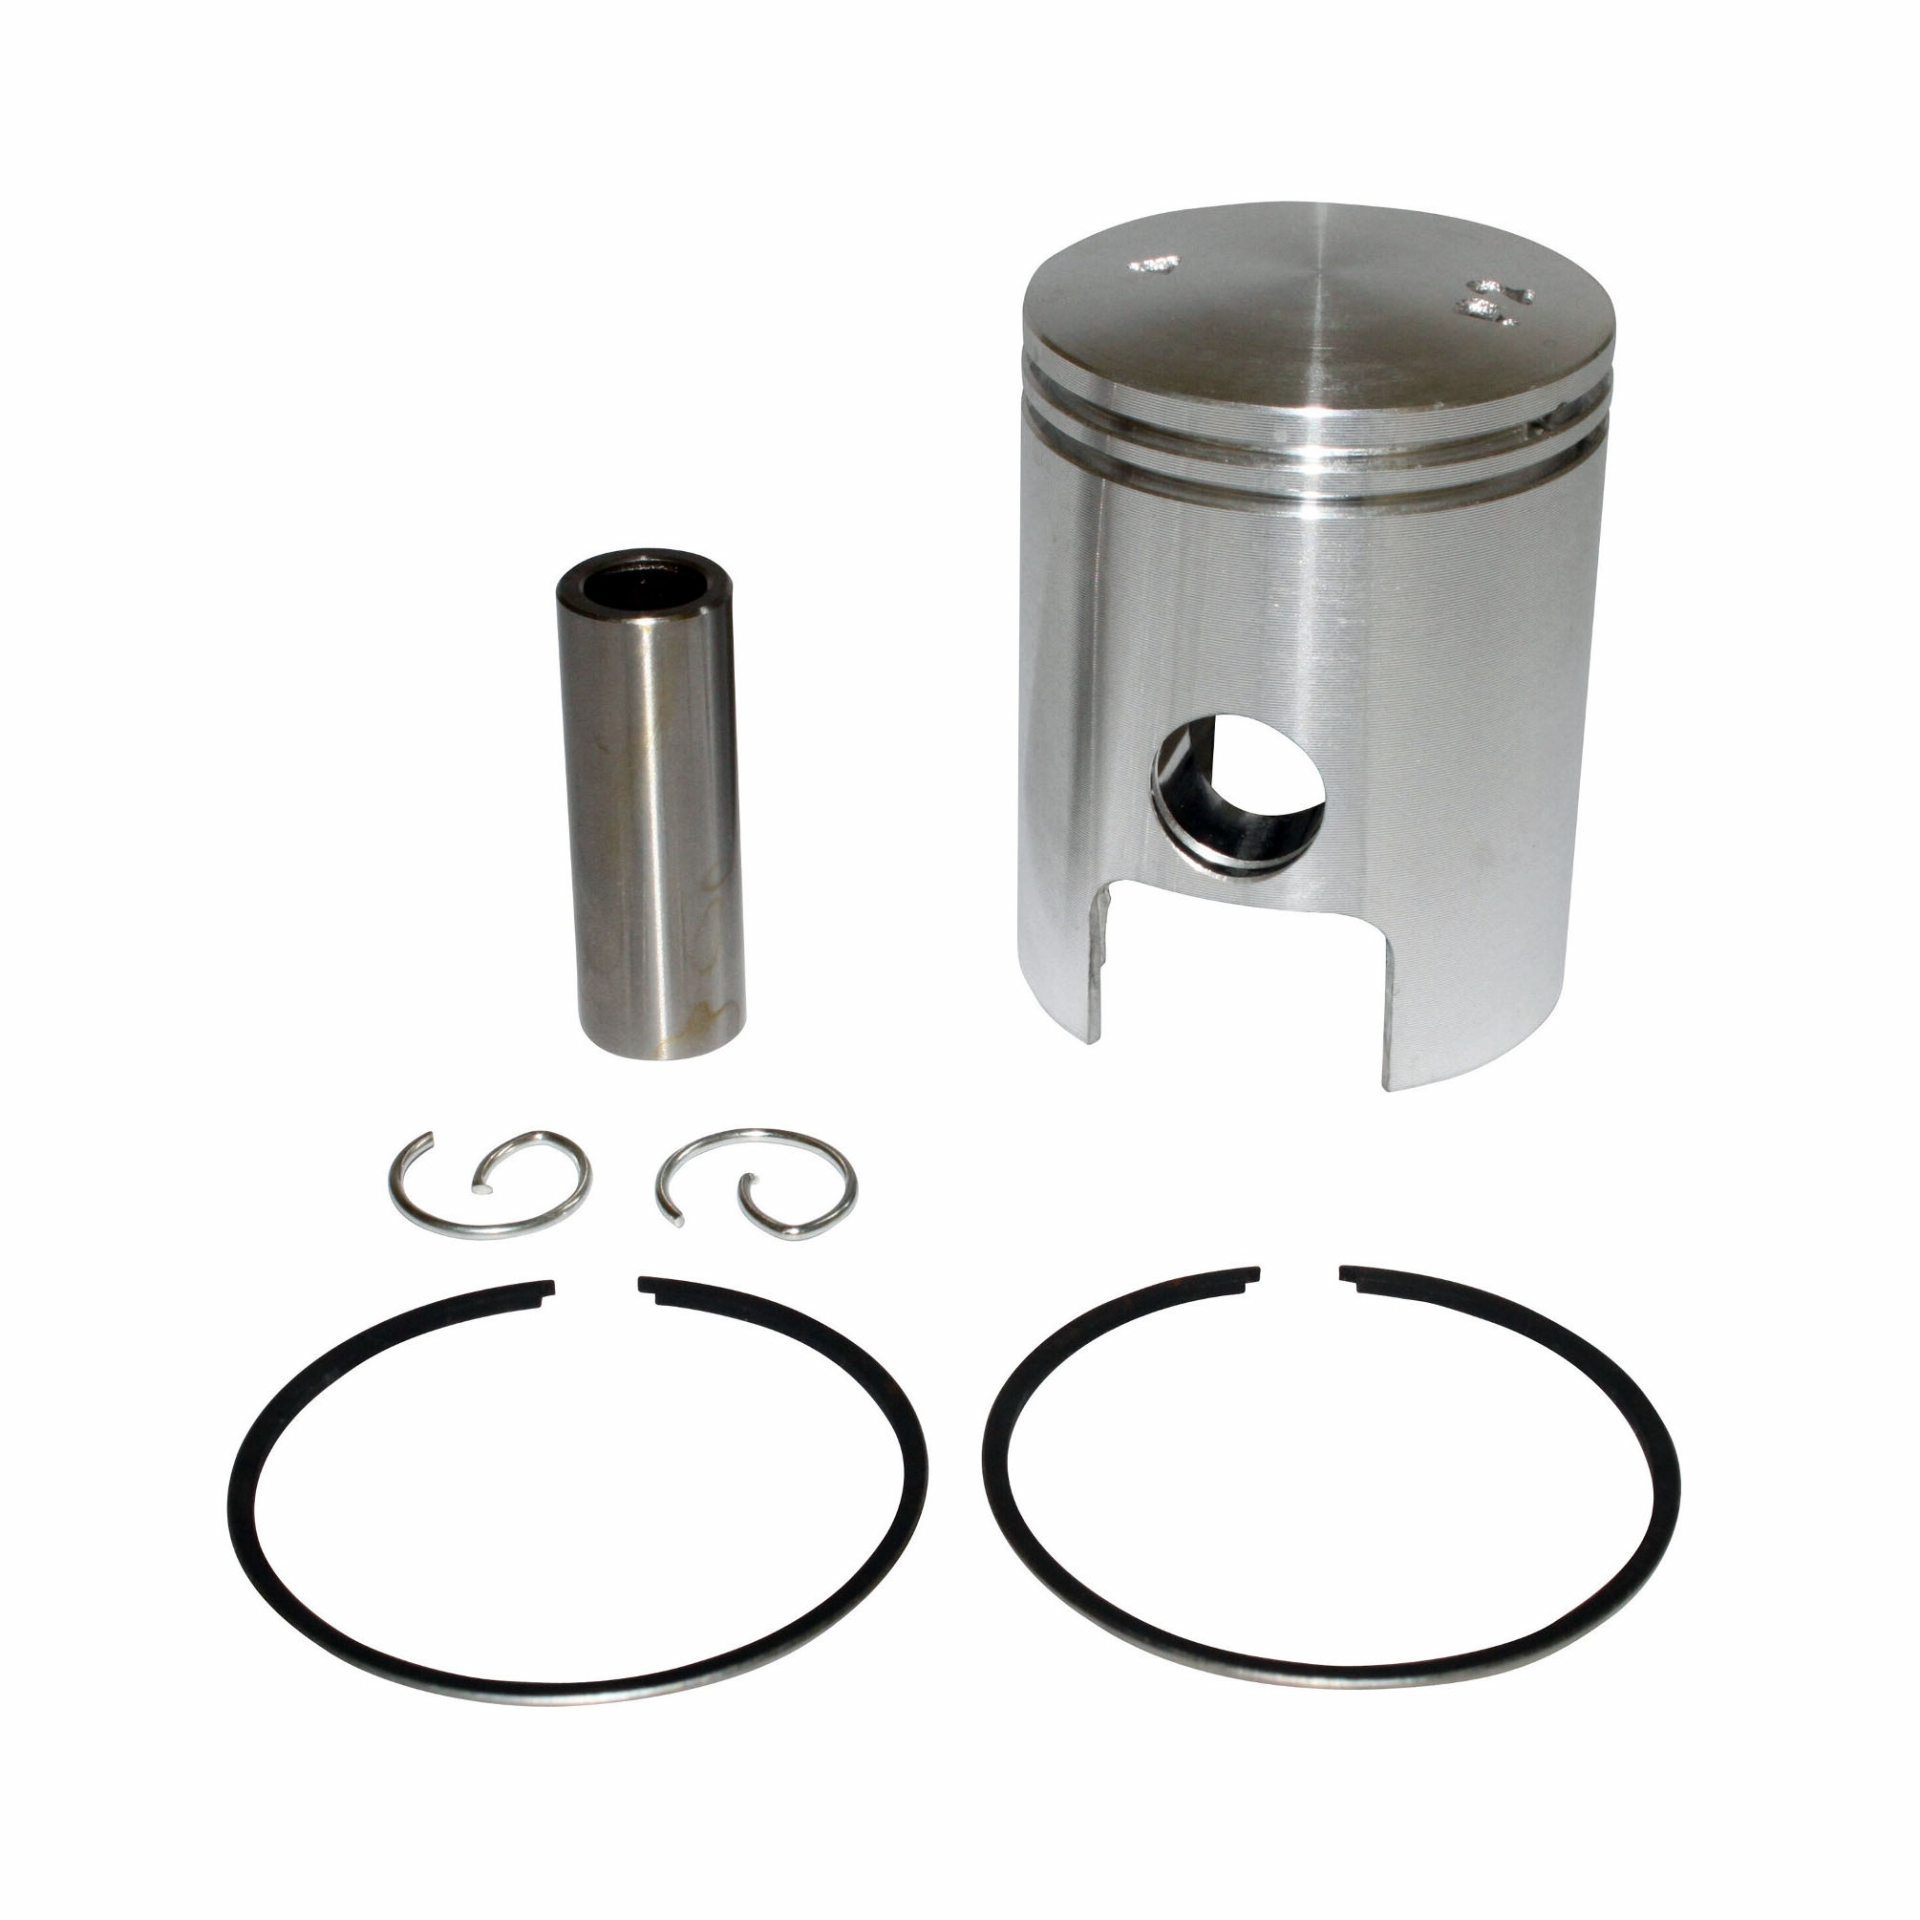 Piston Artek K1 fonte AM6